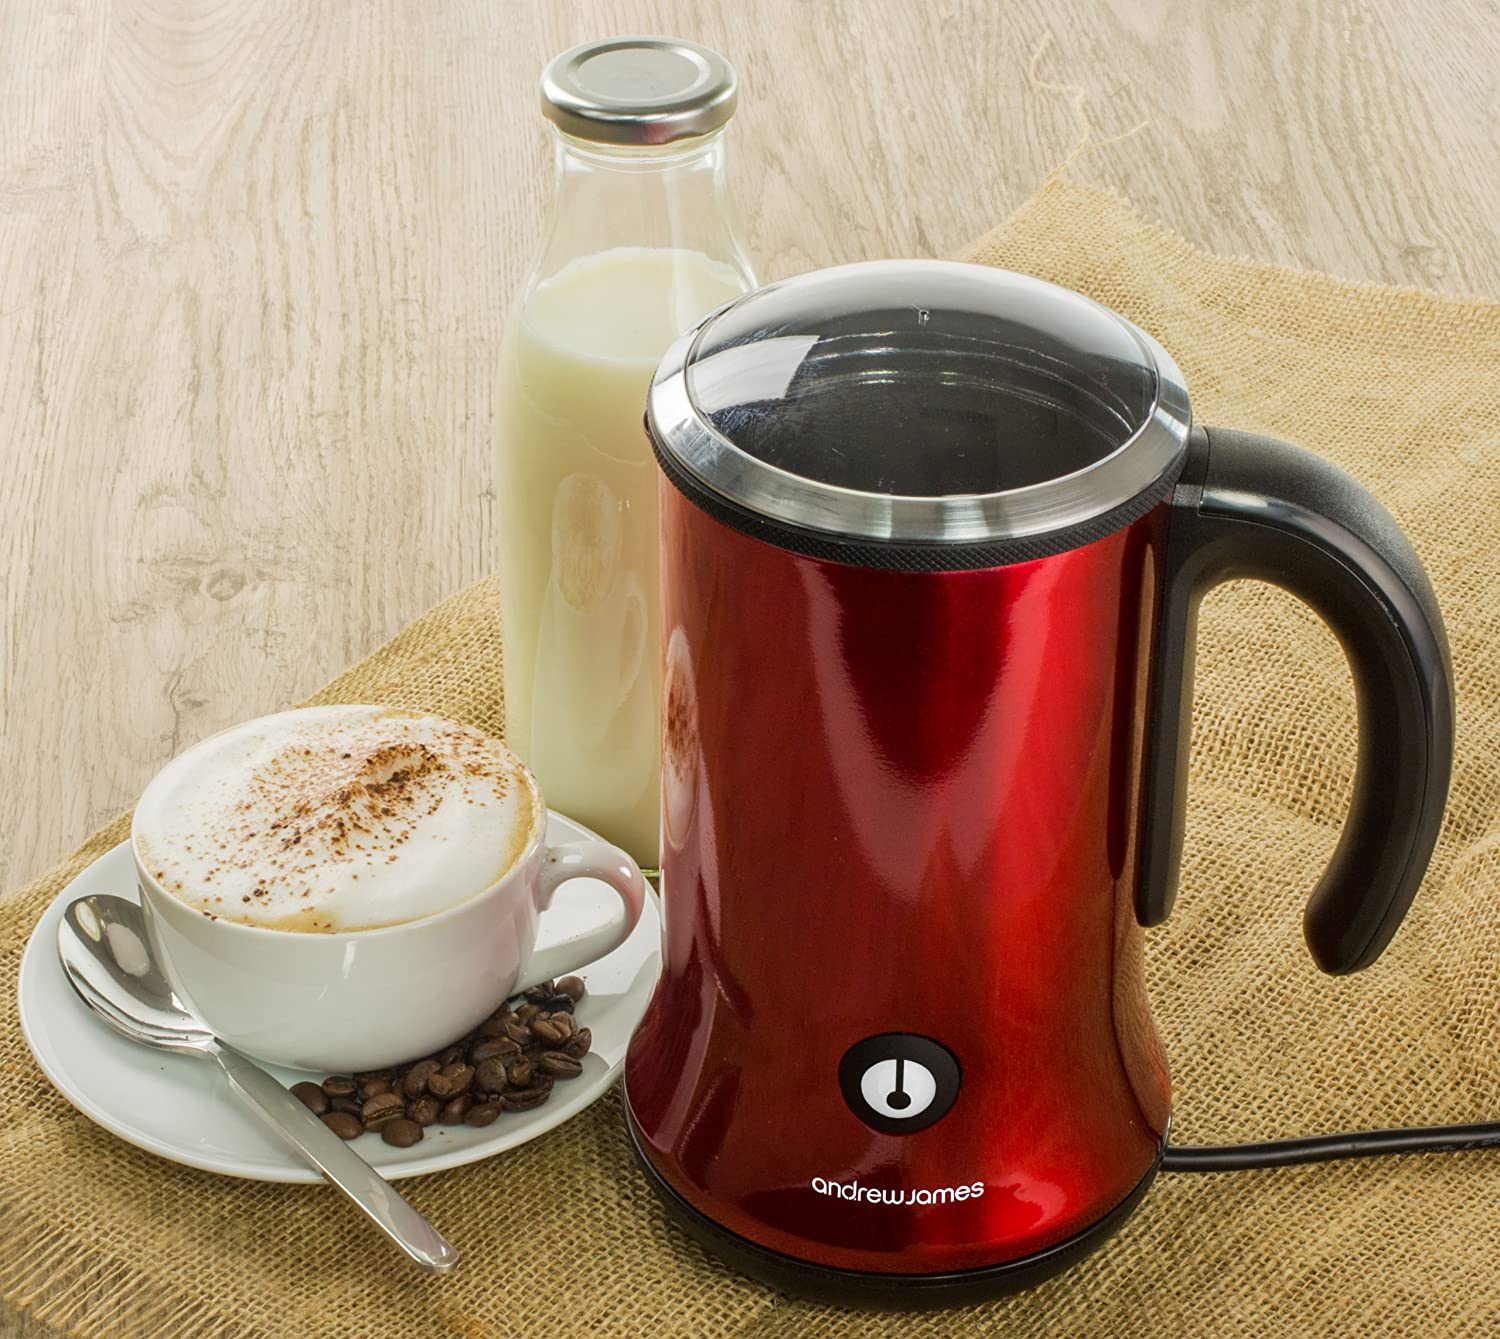 This Andrew James machine is one of the best milk frothers under £50.